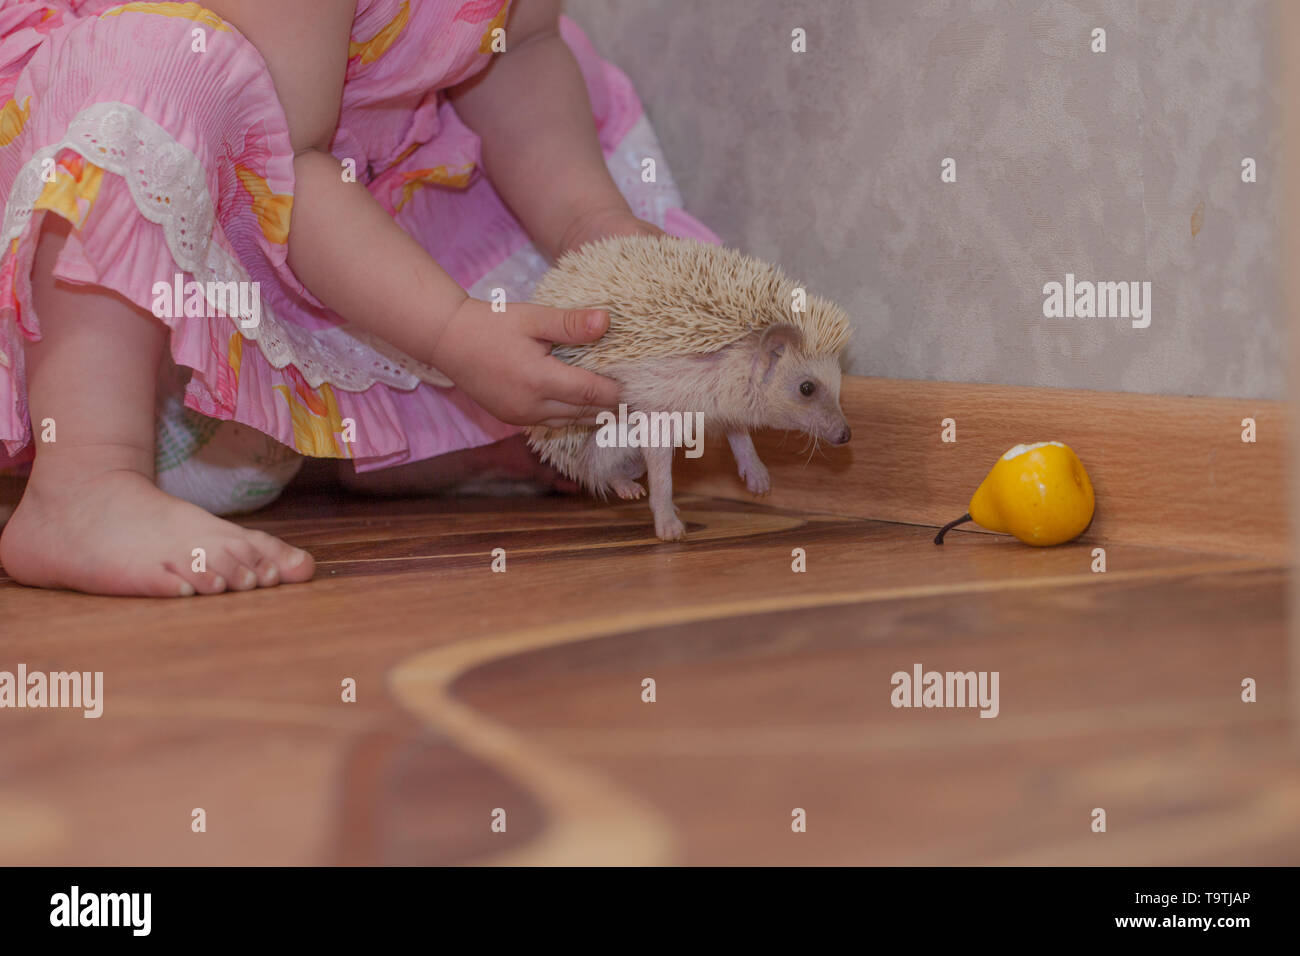 The child is holding a hedgehog. Little girl plays with the animal. Rodent looks at food. - Stock Image